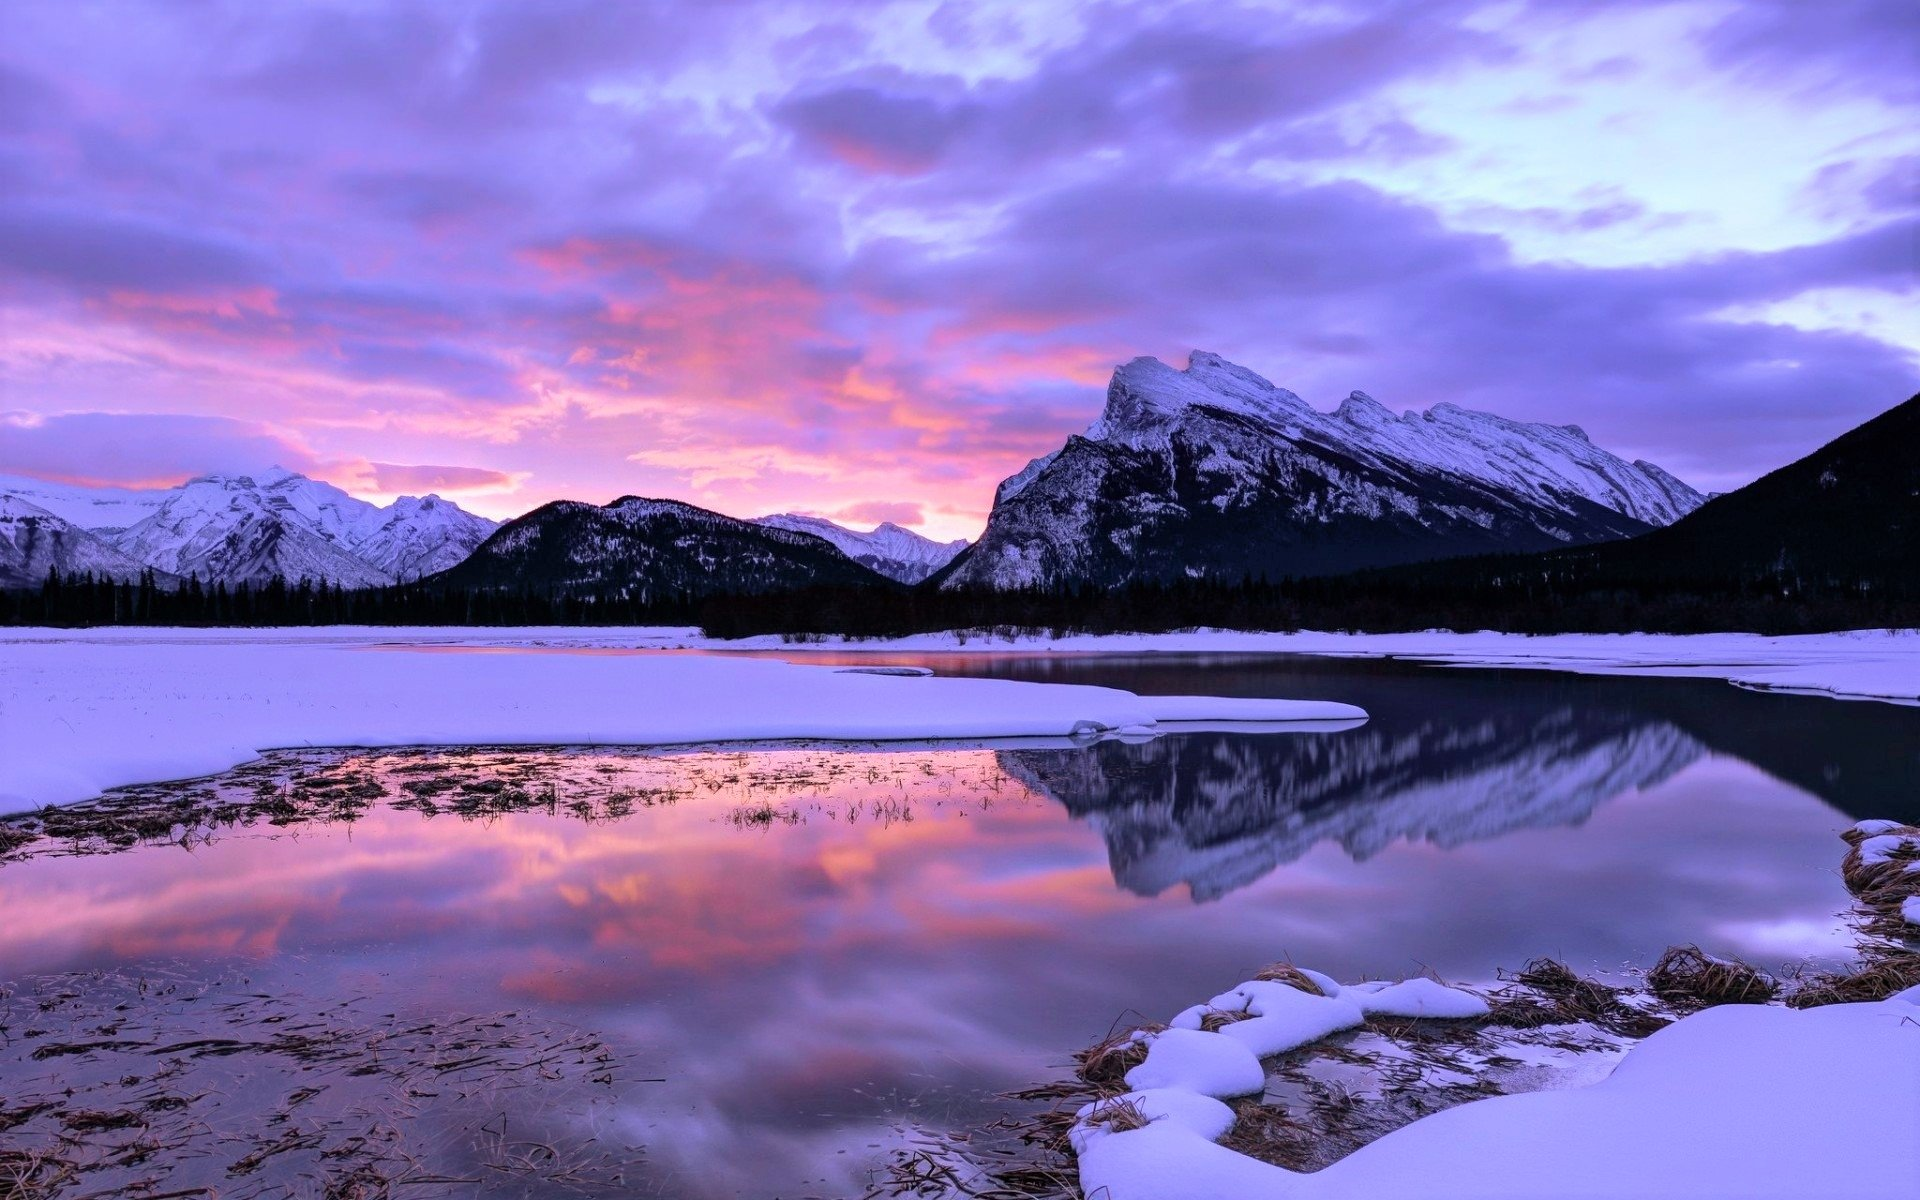 Pink Sunset And Clouds Over Winter Mountain And Lake Hd Wallpaper